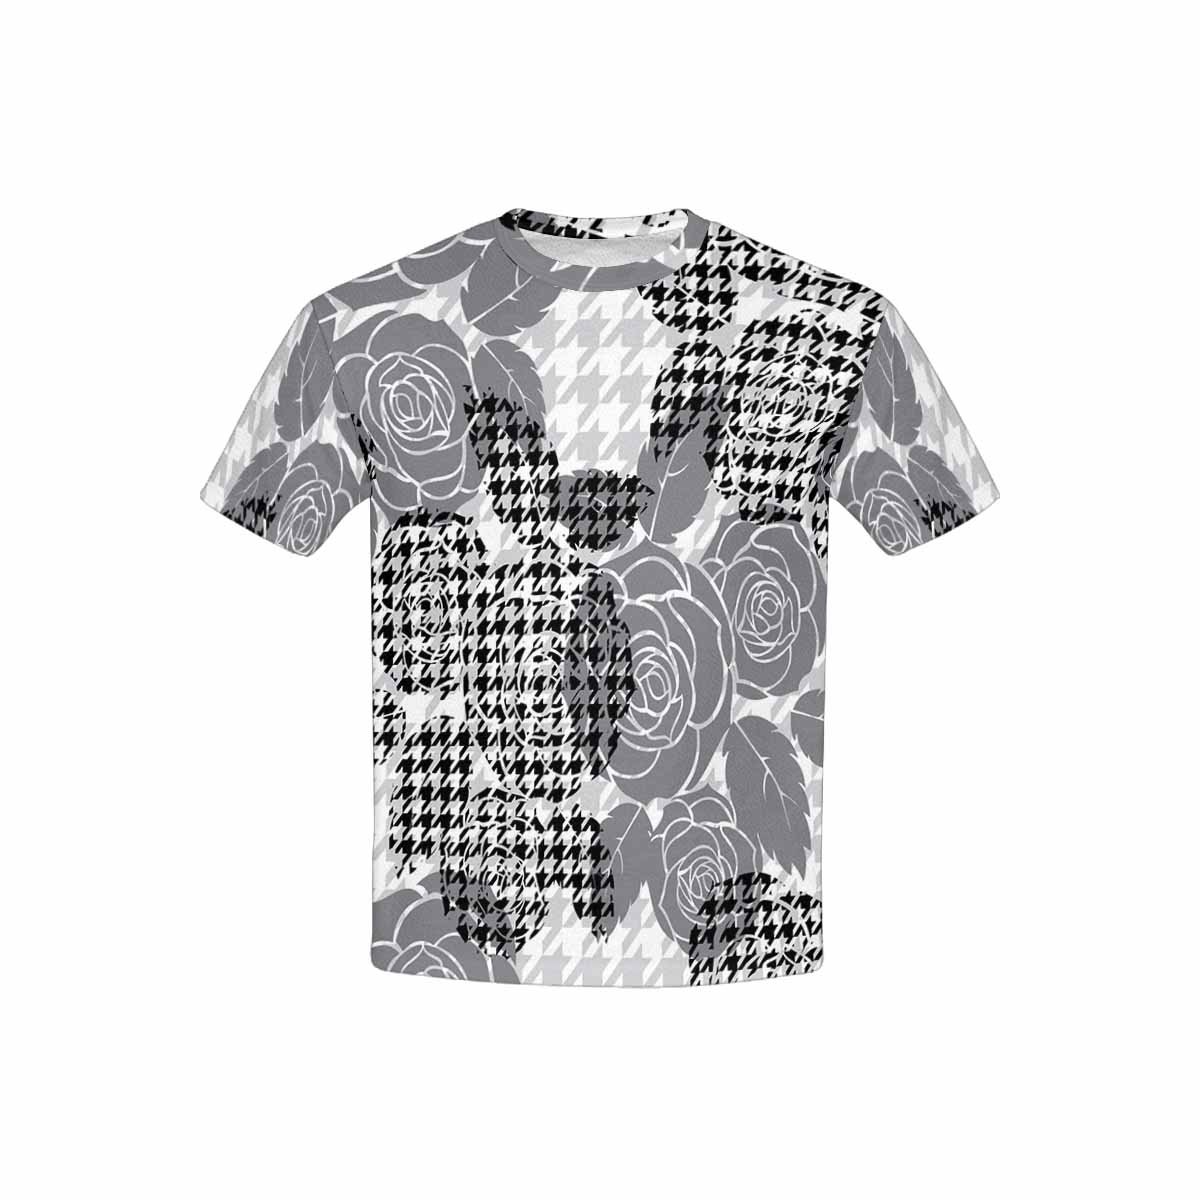 XS-XL INTERESTPRINT Childs T-Shirt Hounds Tooth Pattern with Roses